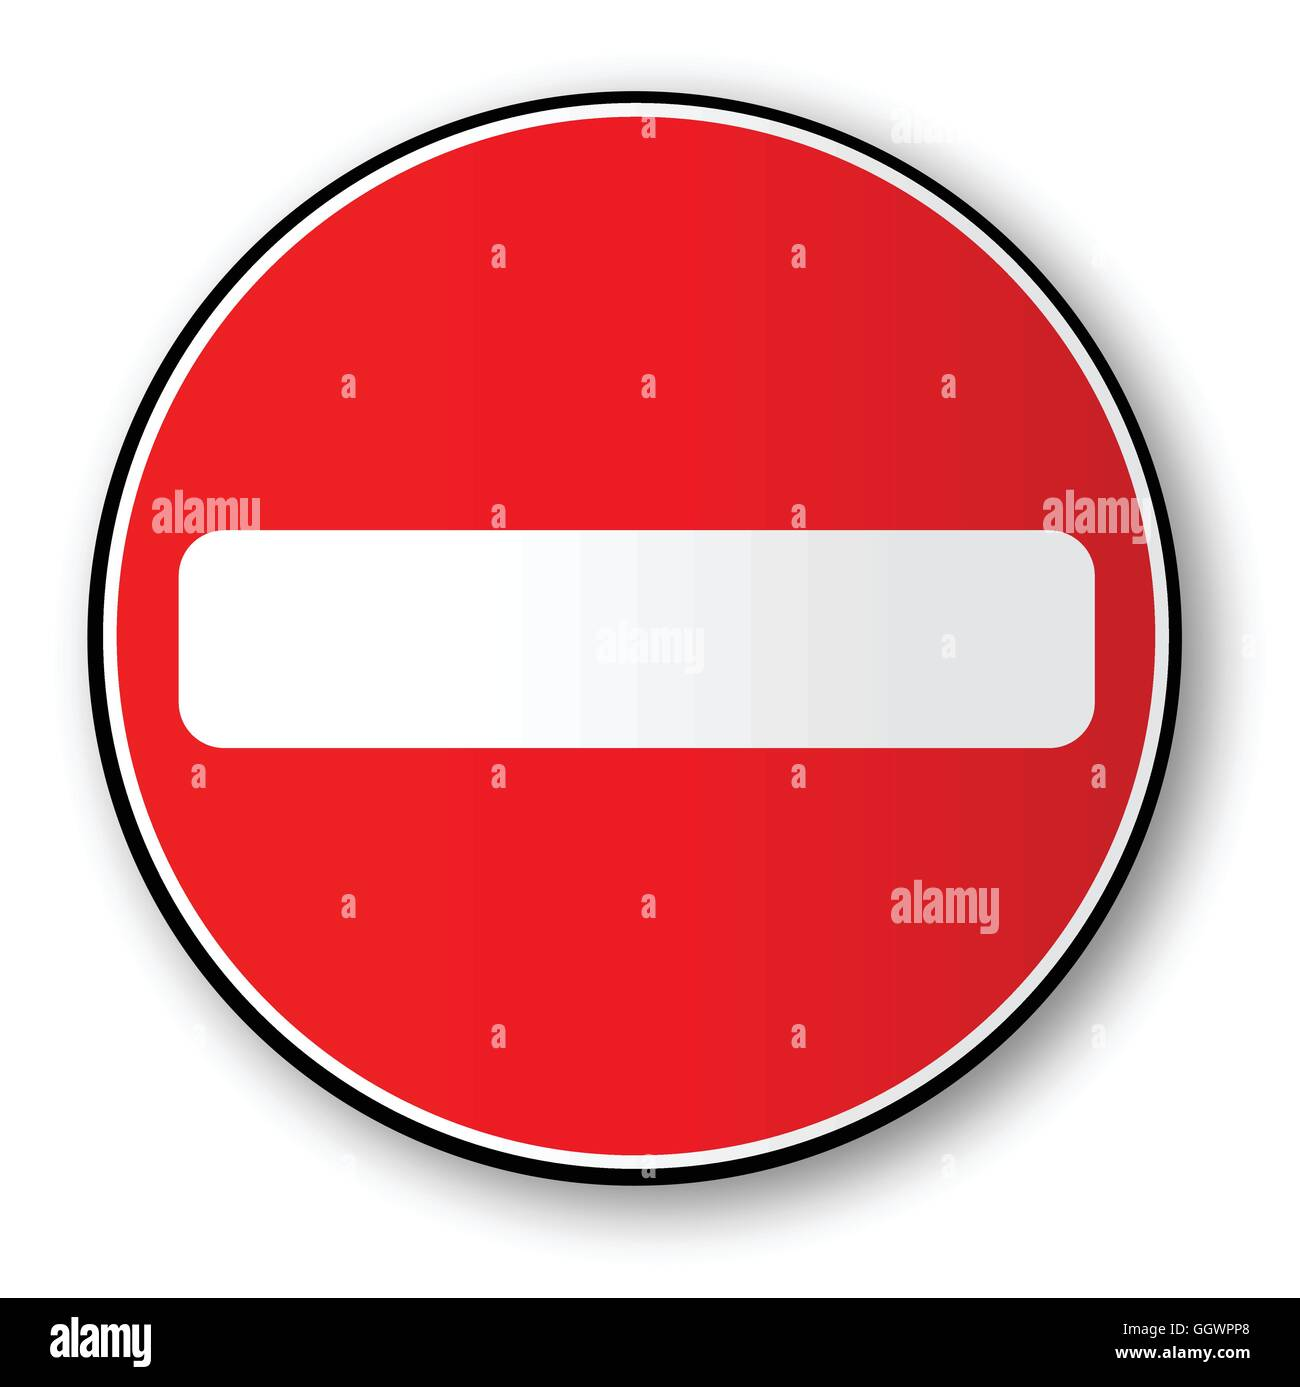 A large round red traffic no entry sign - Stock Image